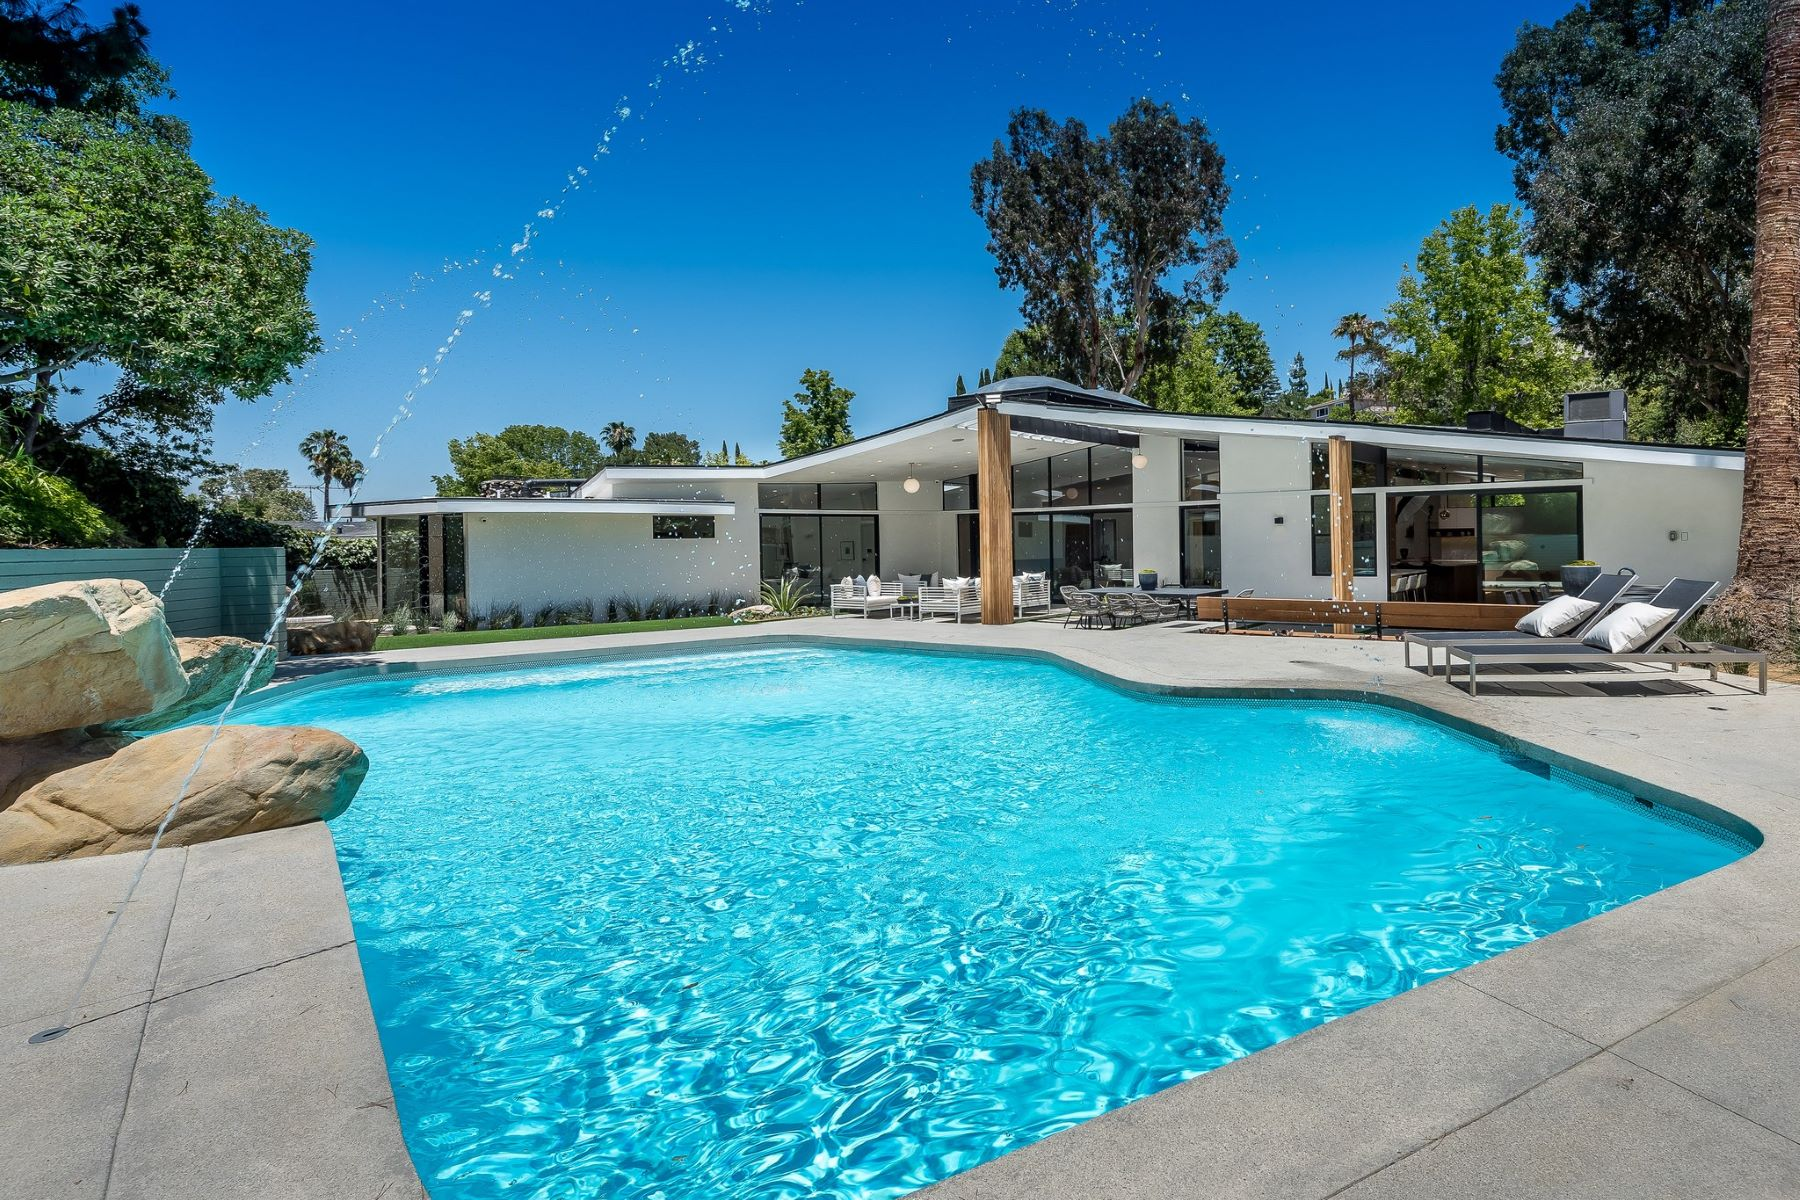 Additional photo for property listing at 4311 Noeline Ave  Encino, California 91436 United States